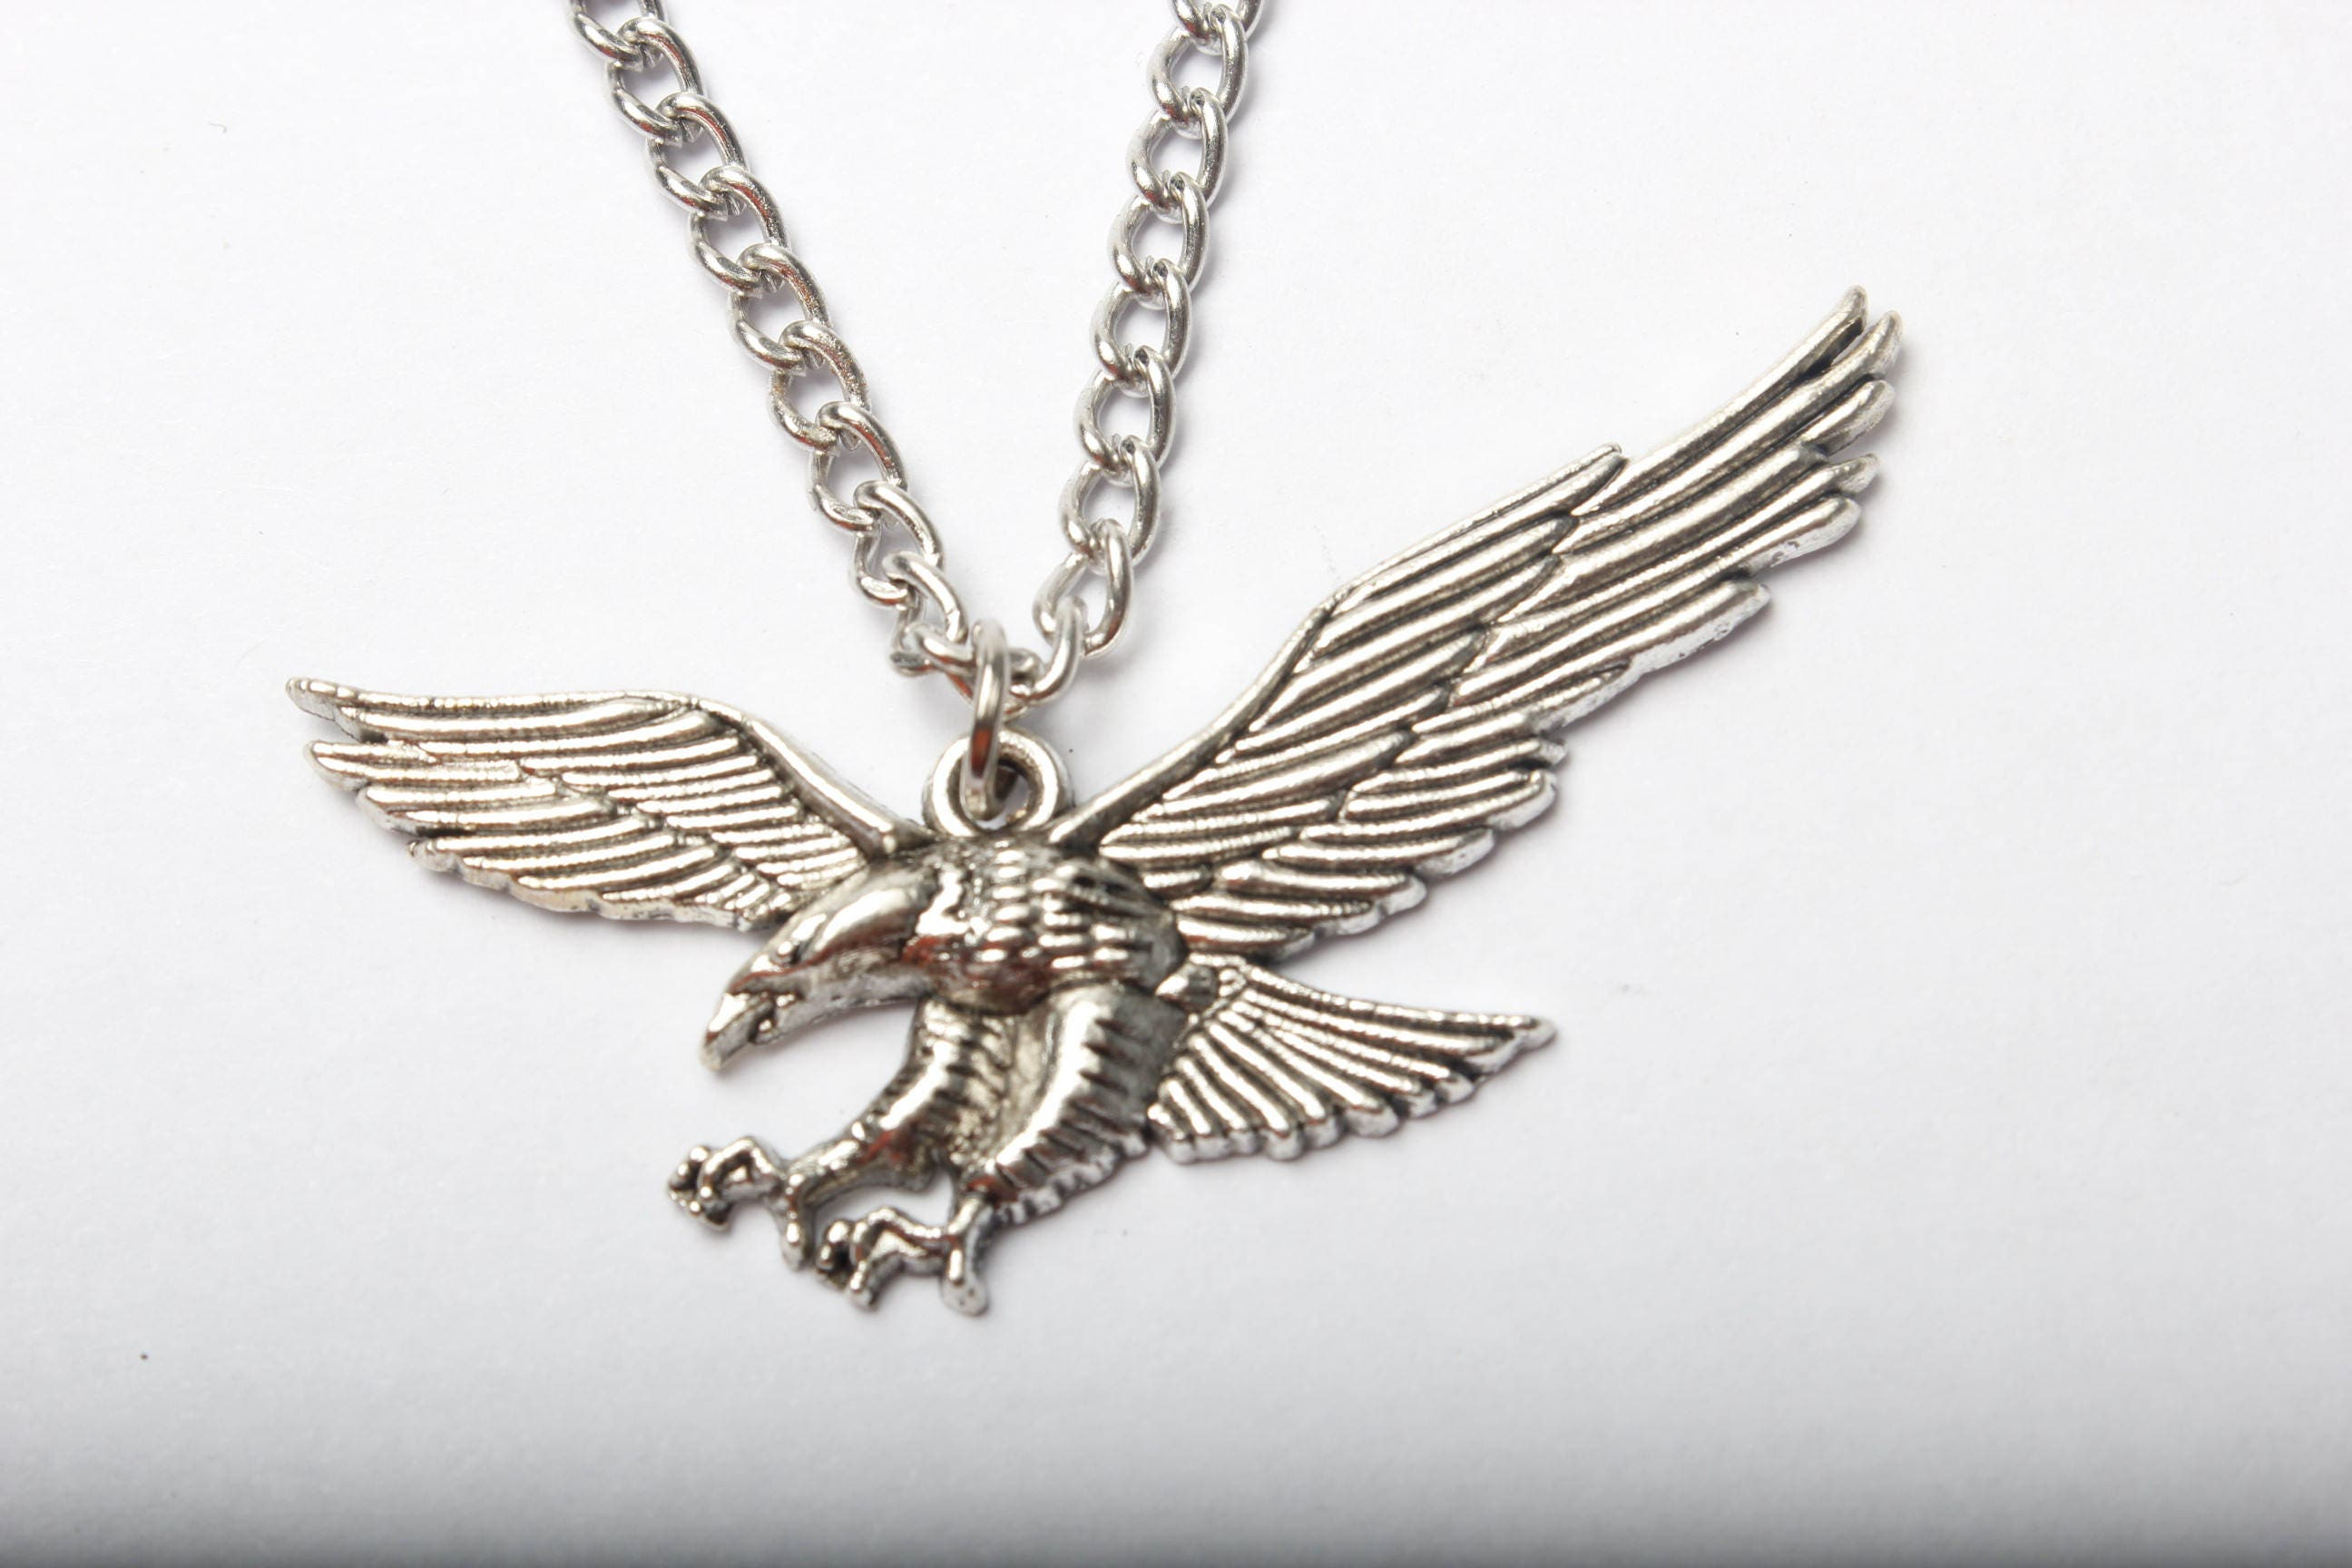 eagle sterling overstock mens over watches today jewelry men shipping s free in anchor product on pendant gold silver